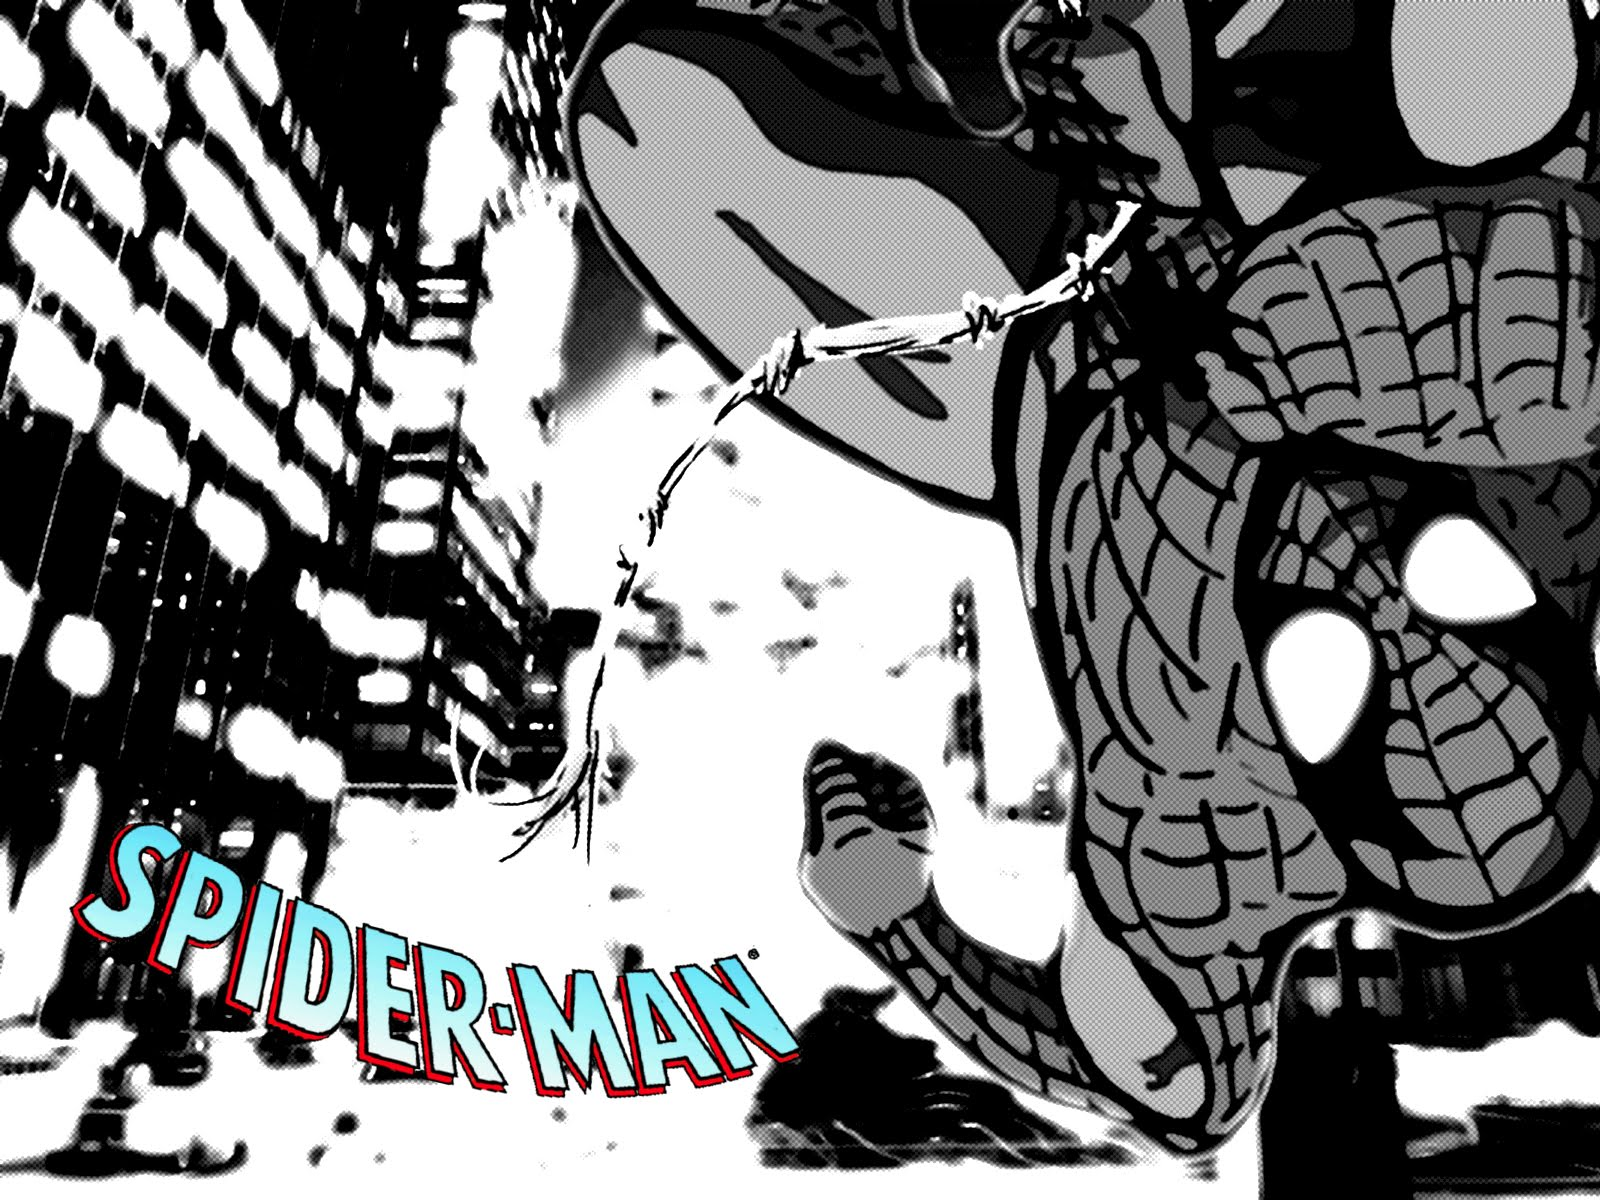 [spiderman+wallpaper]